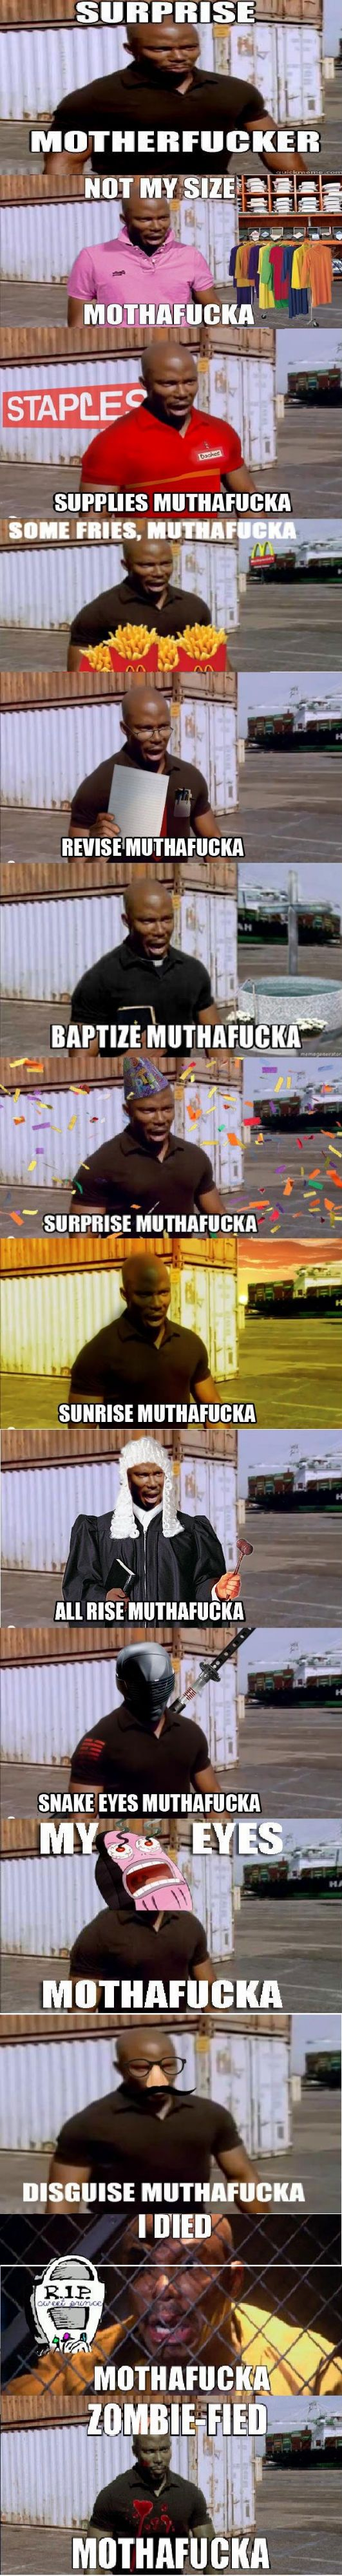 best of surprise muthafucka meme